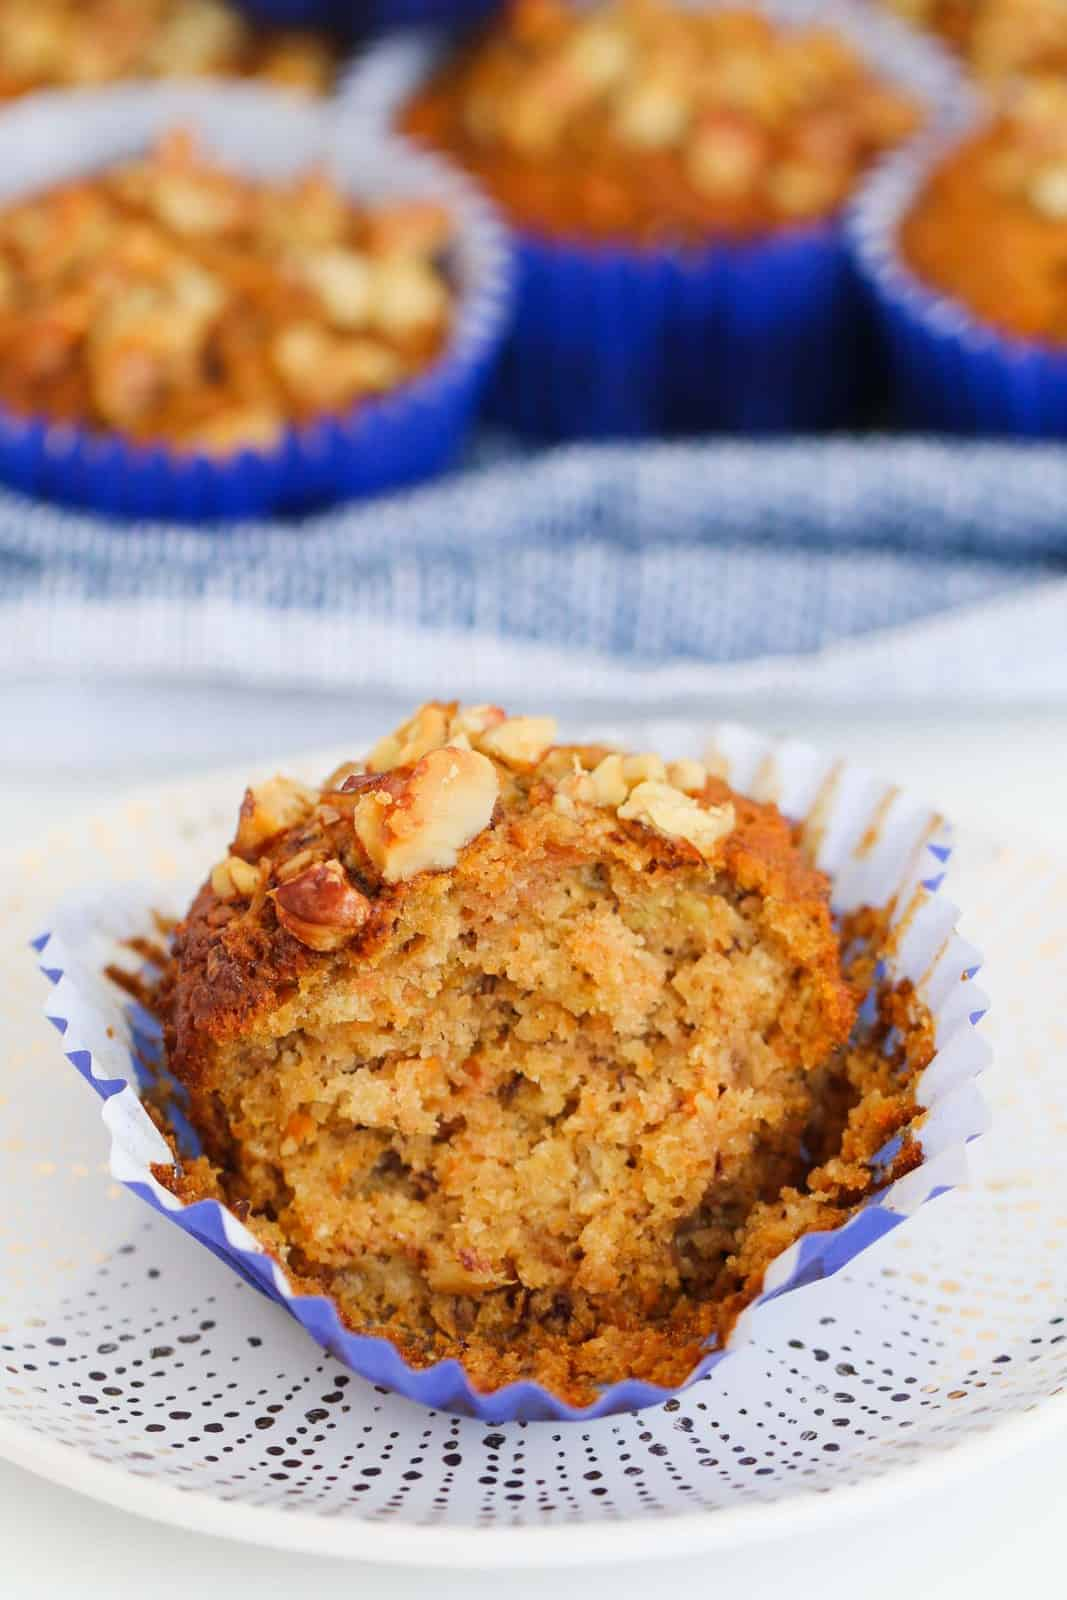 A moist muffin made with carrot, apple and banana.